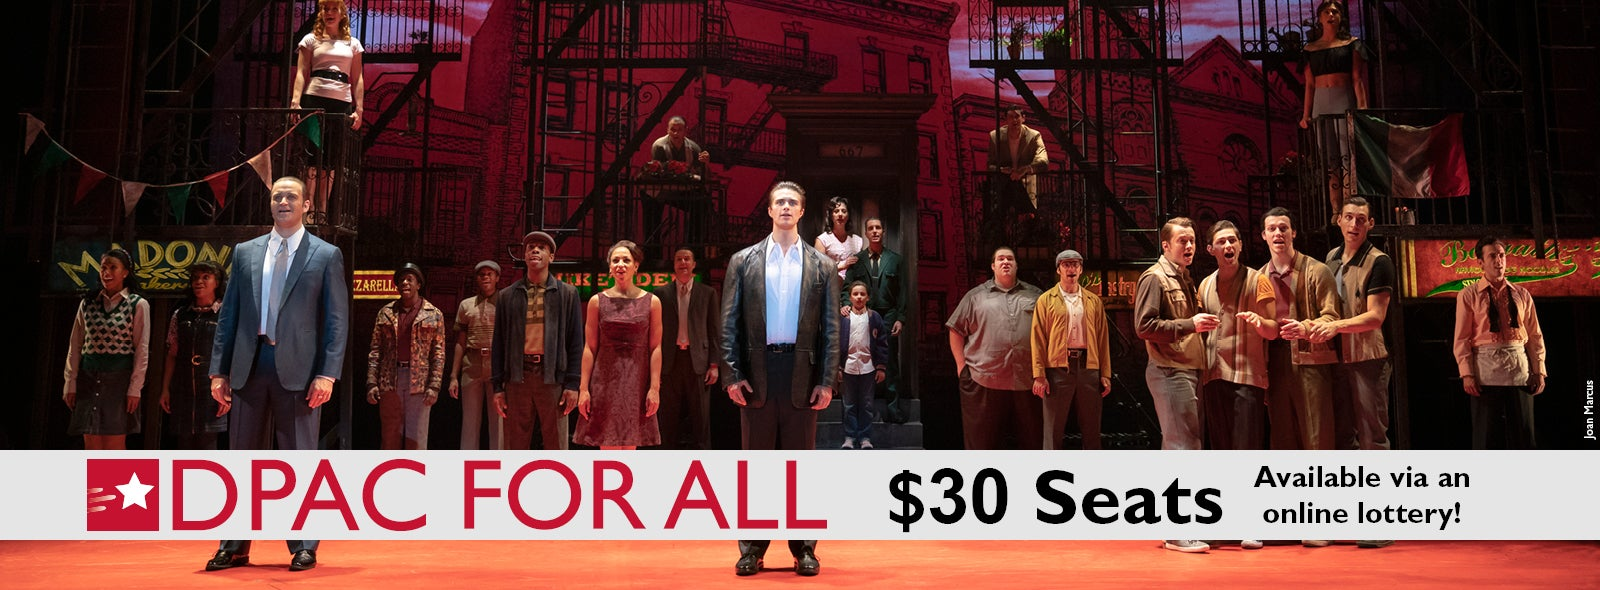 $30 Online Lottery Tickets to A Bronx Tale